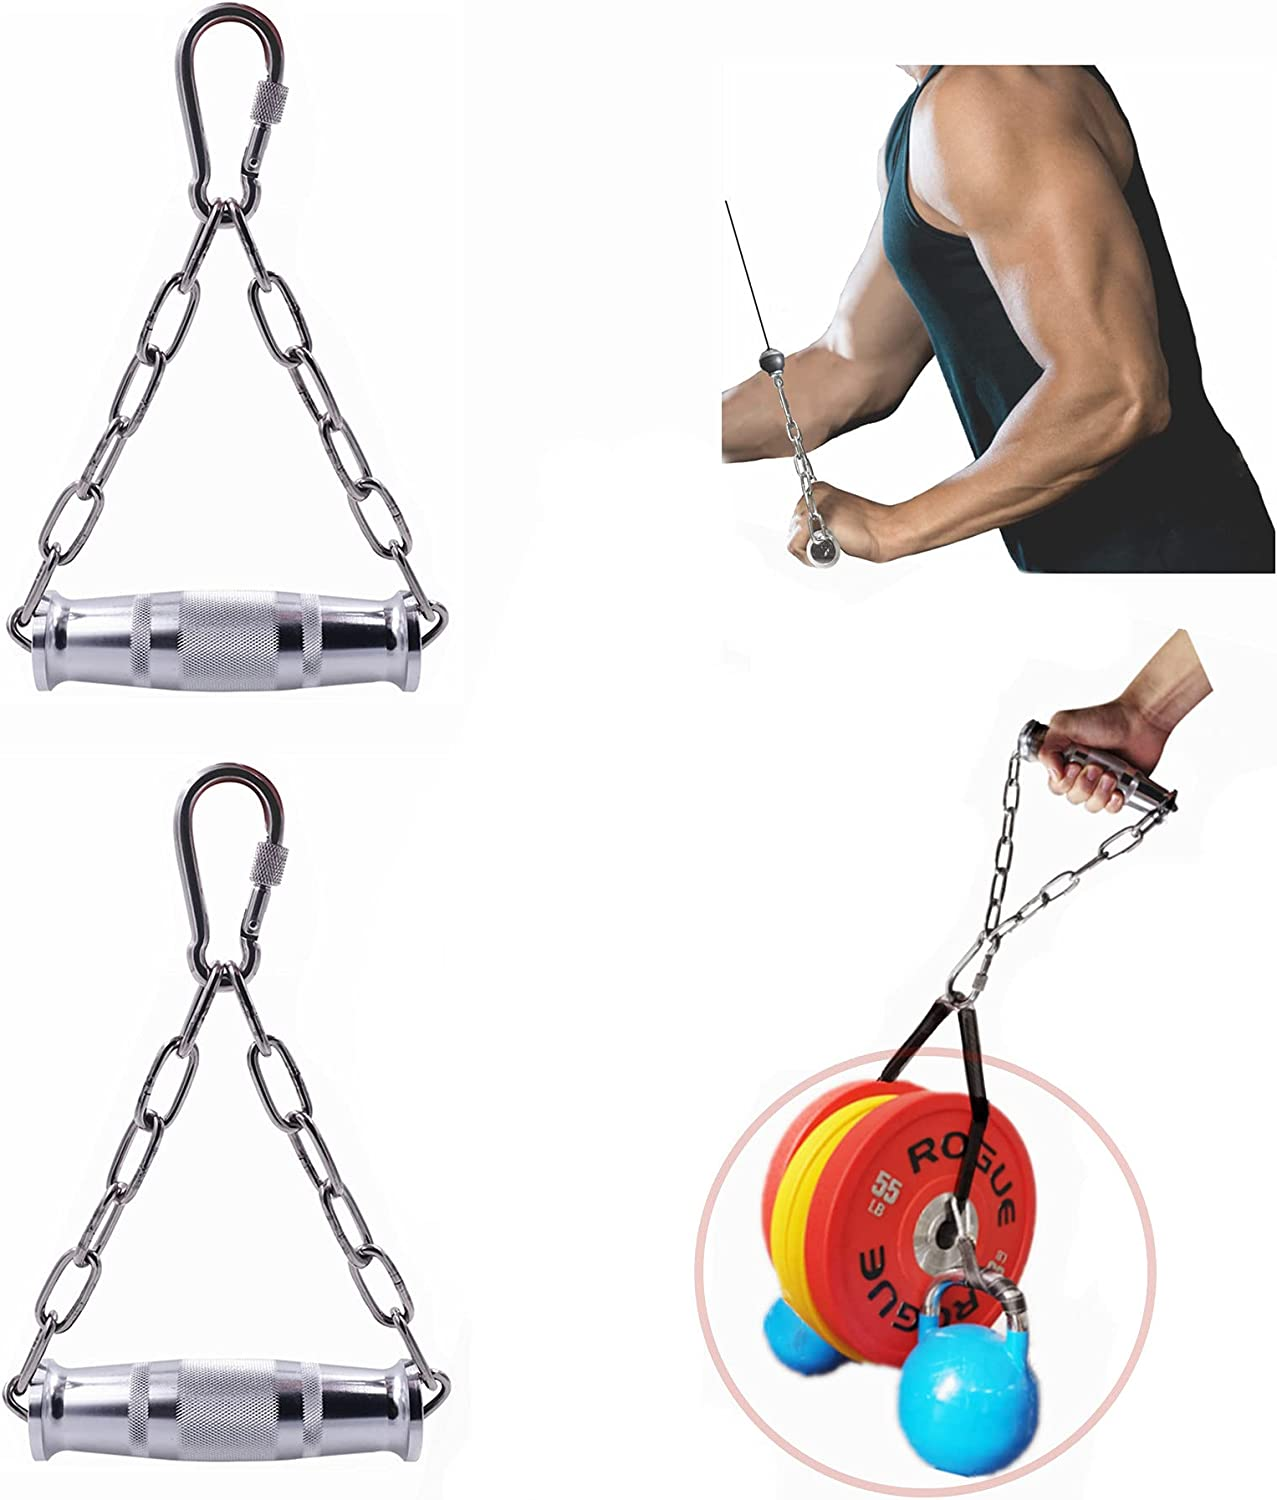 J Bryant Fitness Heavy Duty Metal Gym Handles with Stainless Steel Chain for Cable Machine Attachments Rotating Bar Home Gym Workout Accessories